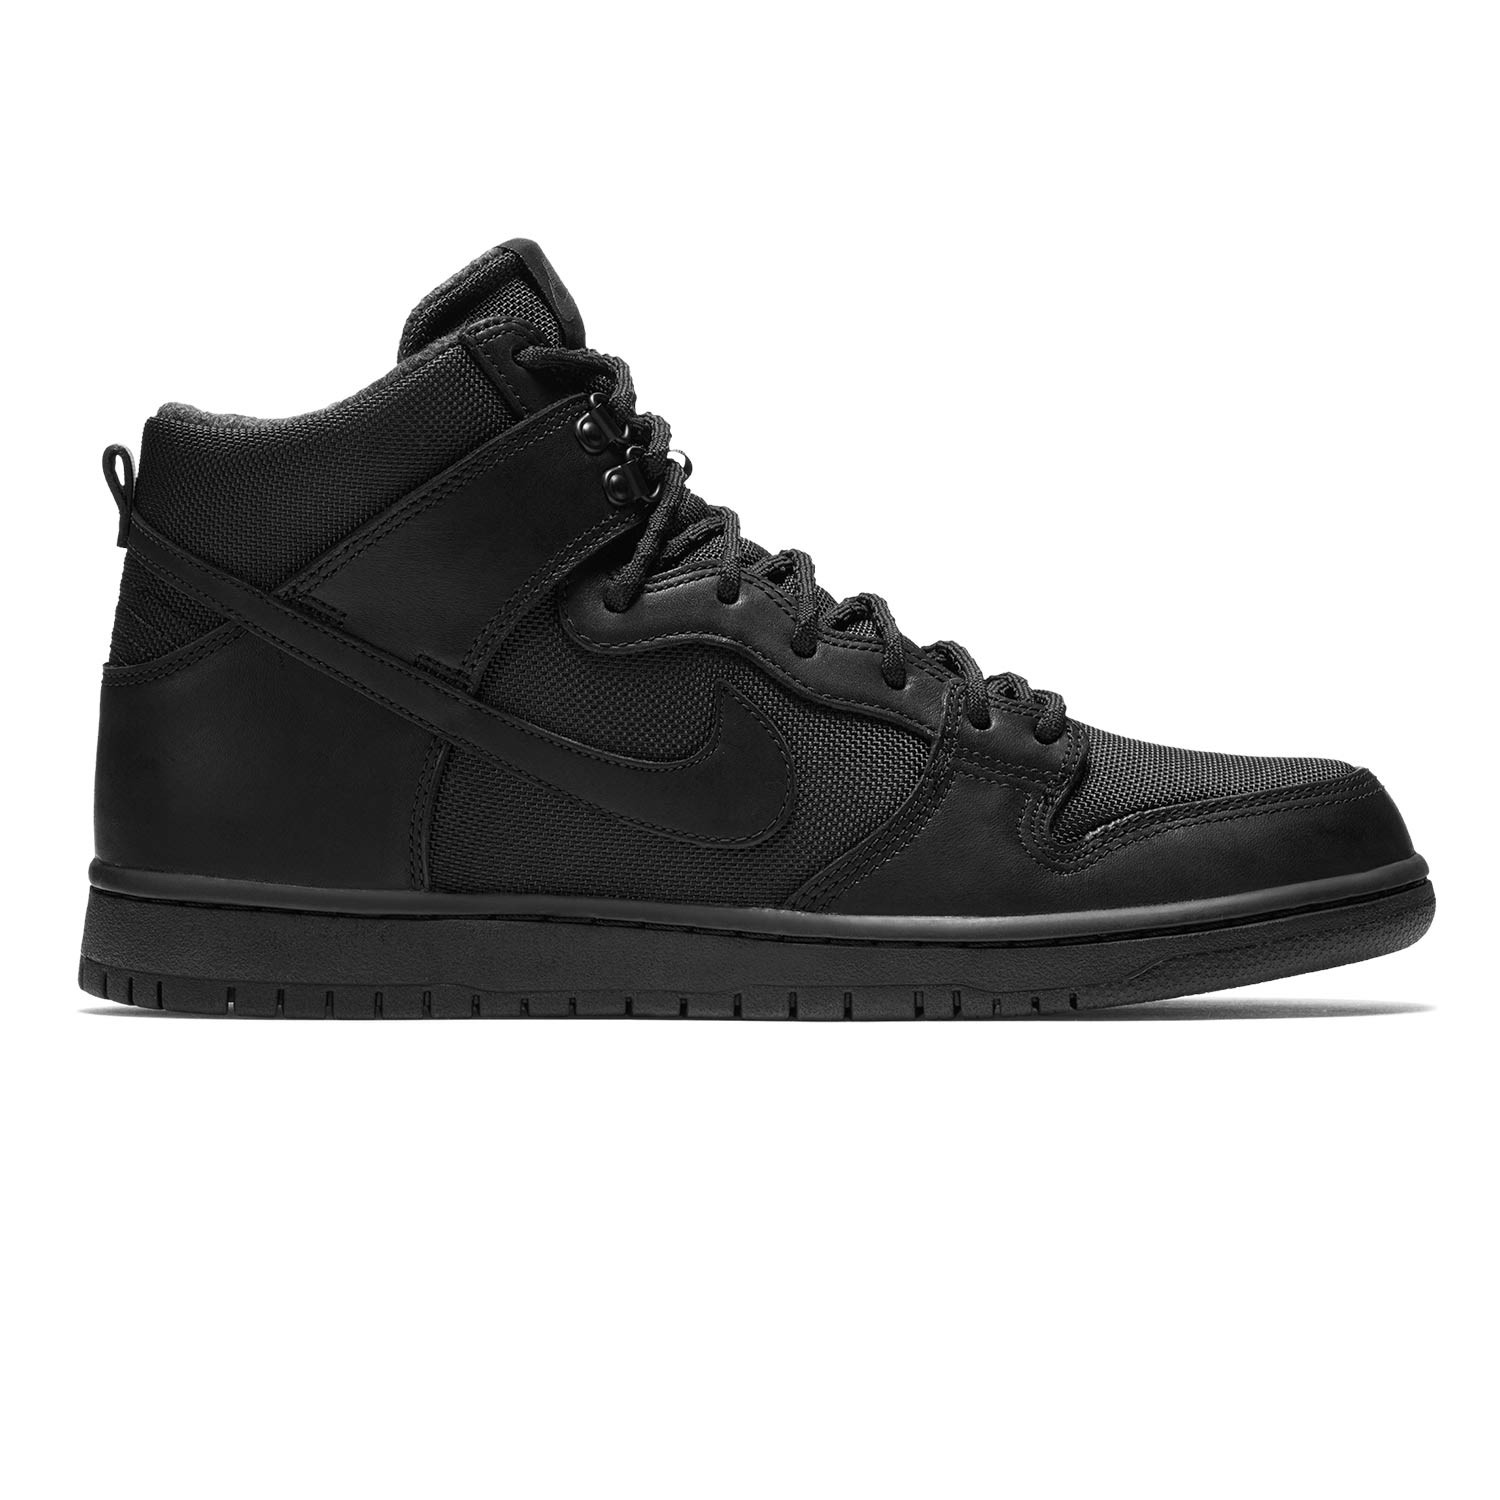 tenisky nike sb zoom dunk high pro black black anthracite snowboard zezula. Black Bedroom Furniture Sets. Home Design Ideas